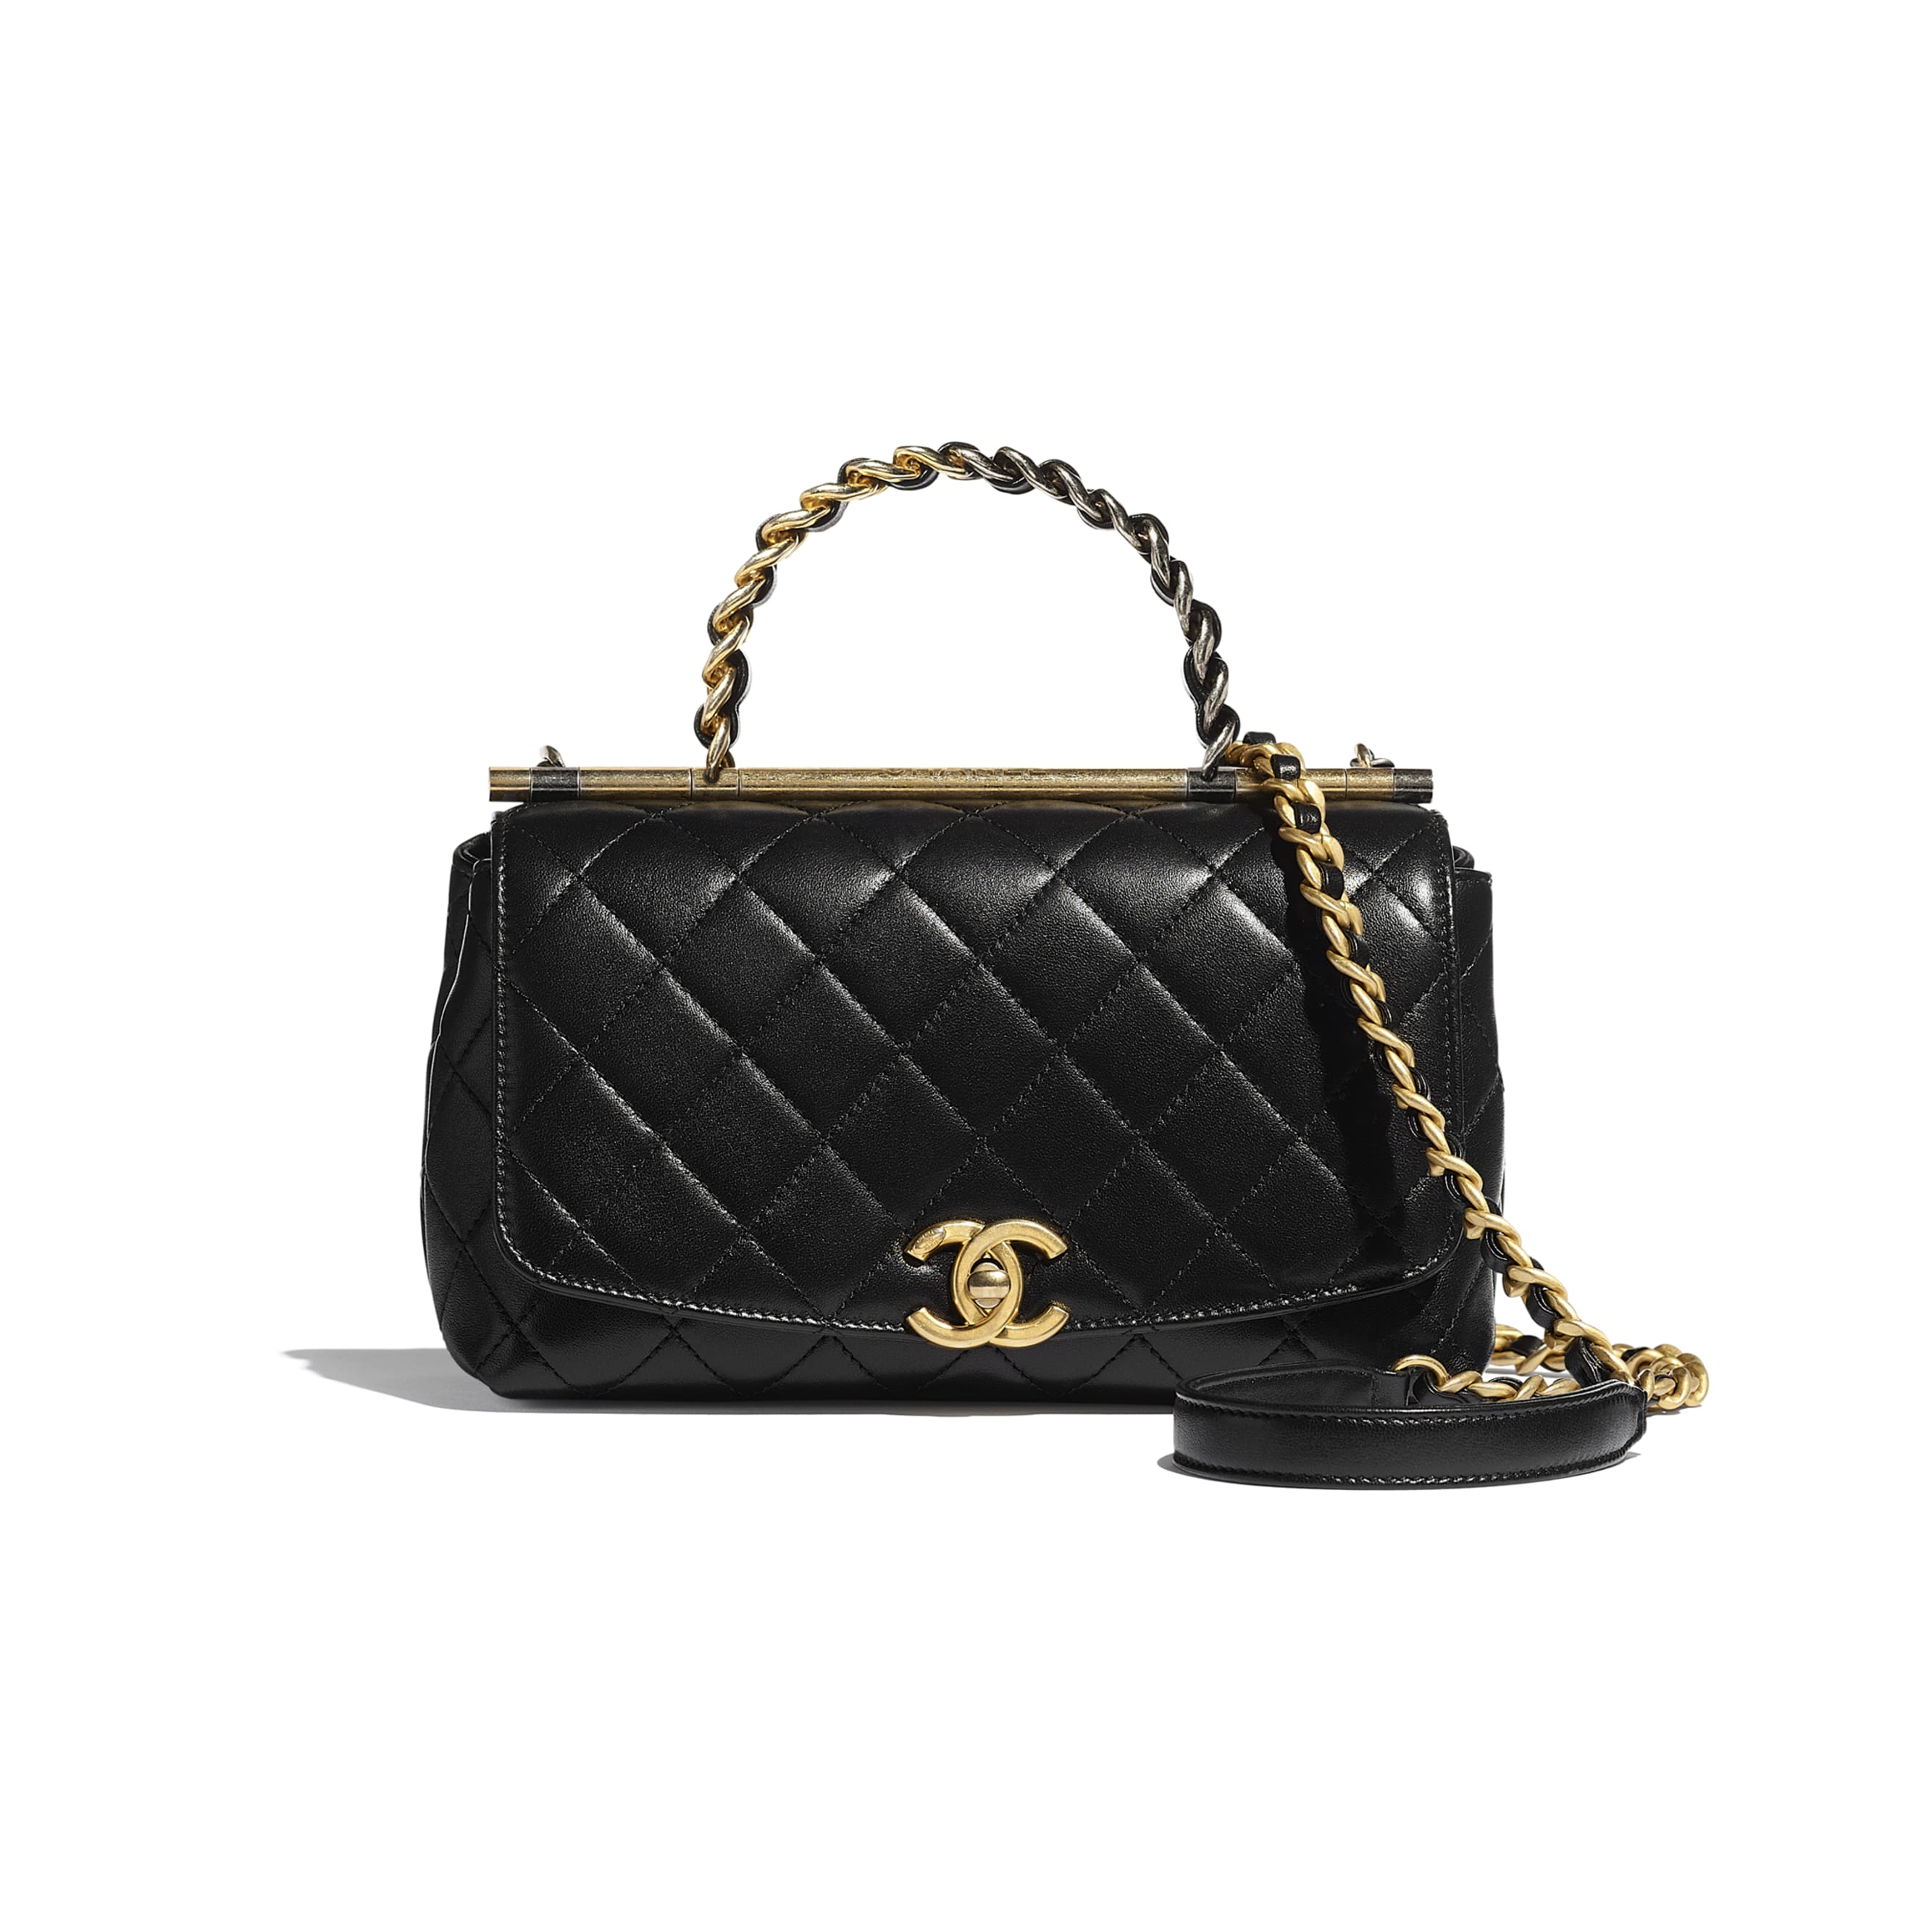 Small Flap Bag with Top Handle - Black - Lambskin, Gold-Tone & Ruthenium-Finish Metal - CHANEL - Default view - see standard sized version